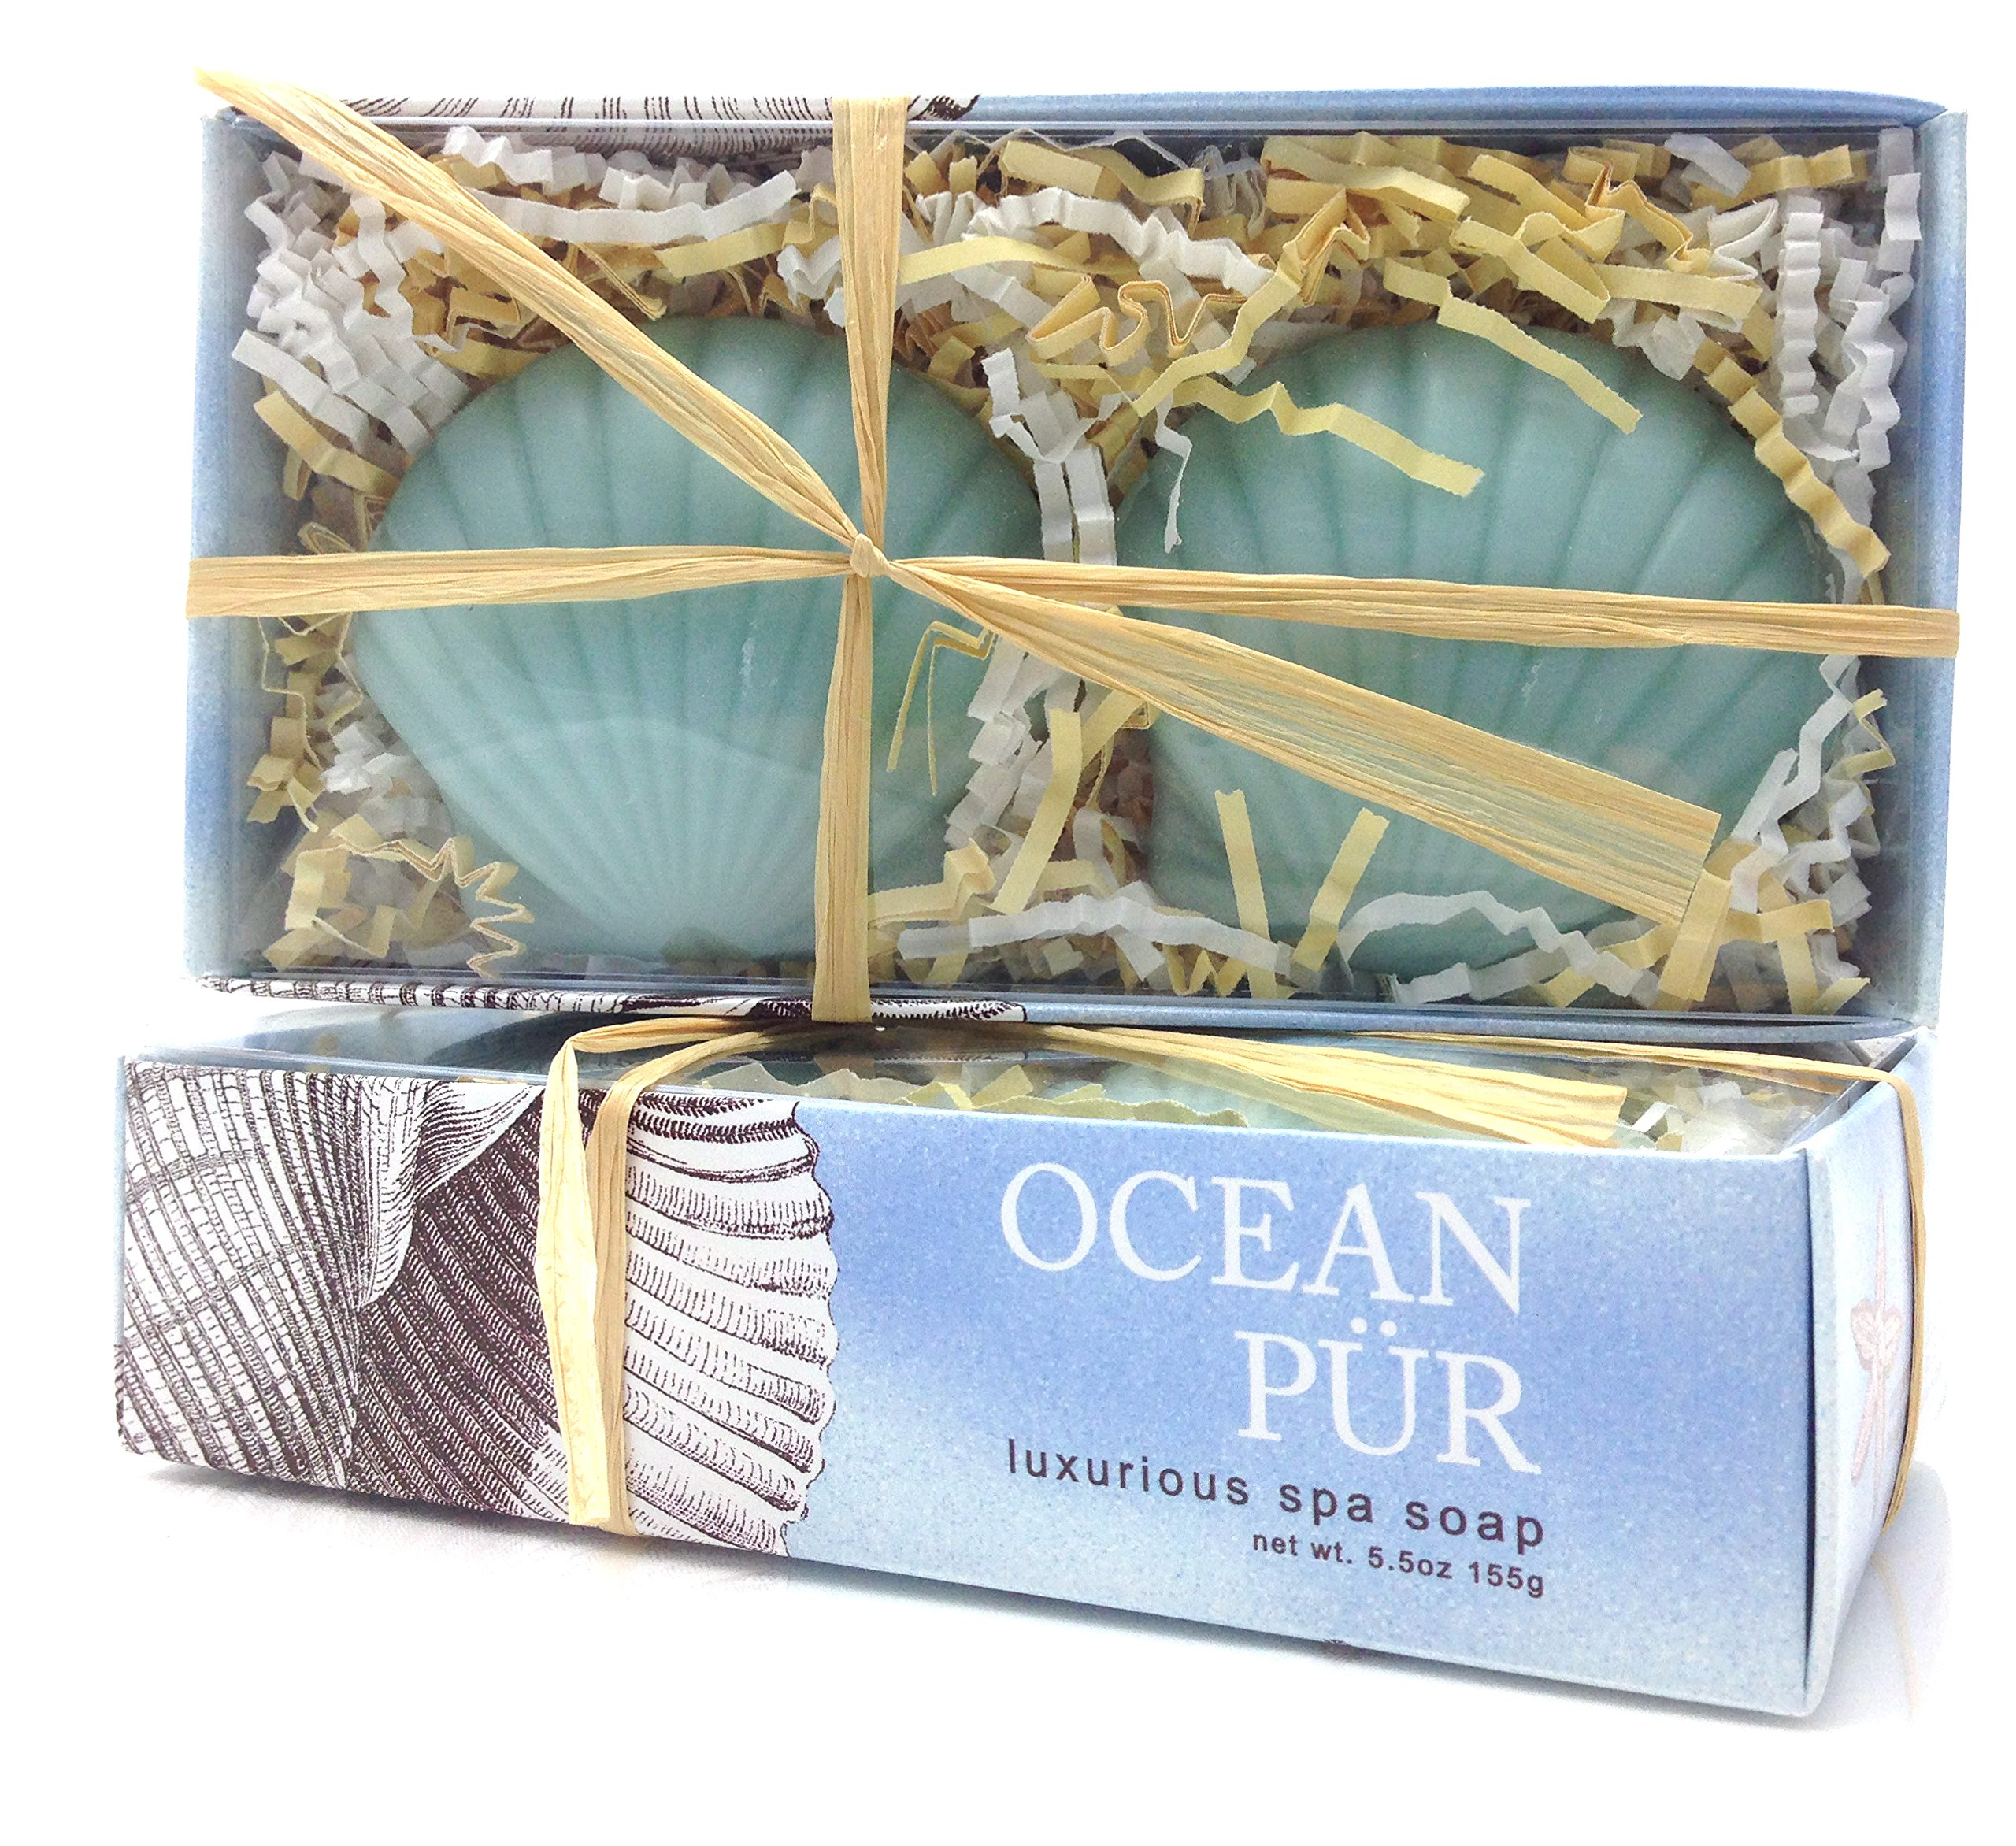 Ocean Pur Luxurious French-Milled Sea Shell Spa Soap Gift Set by Greenwich Bay Trading Company